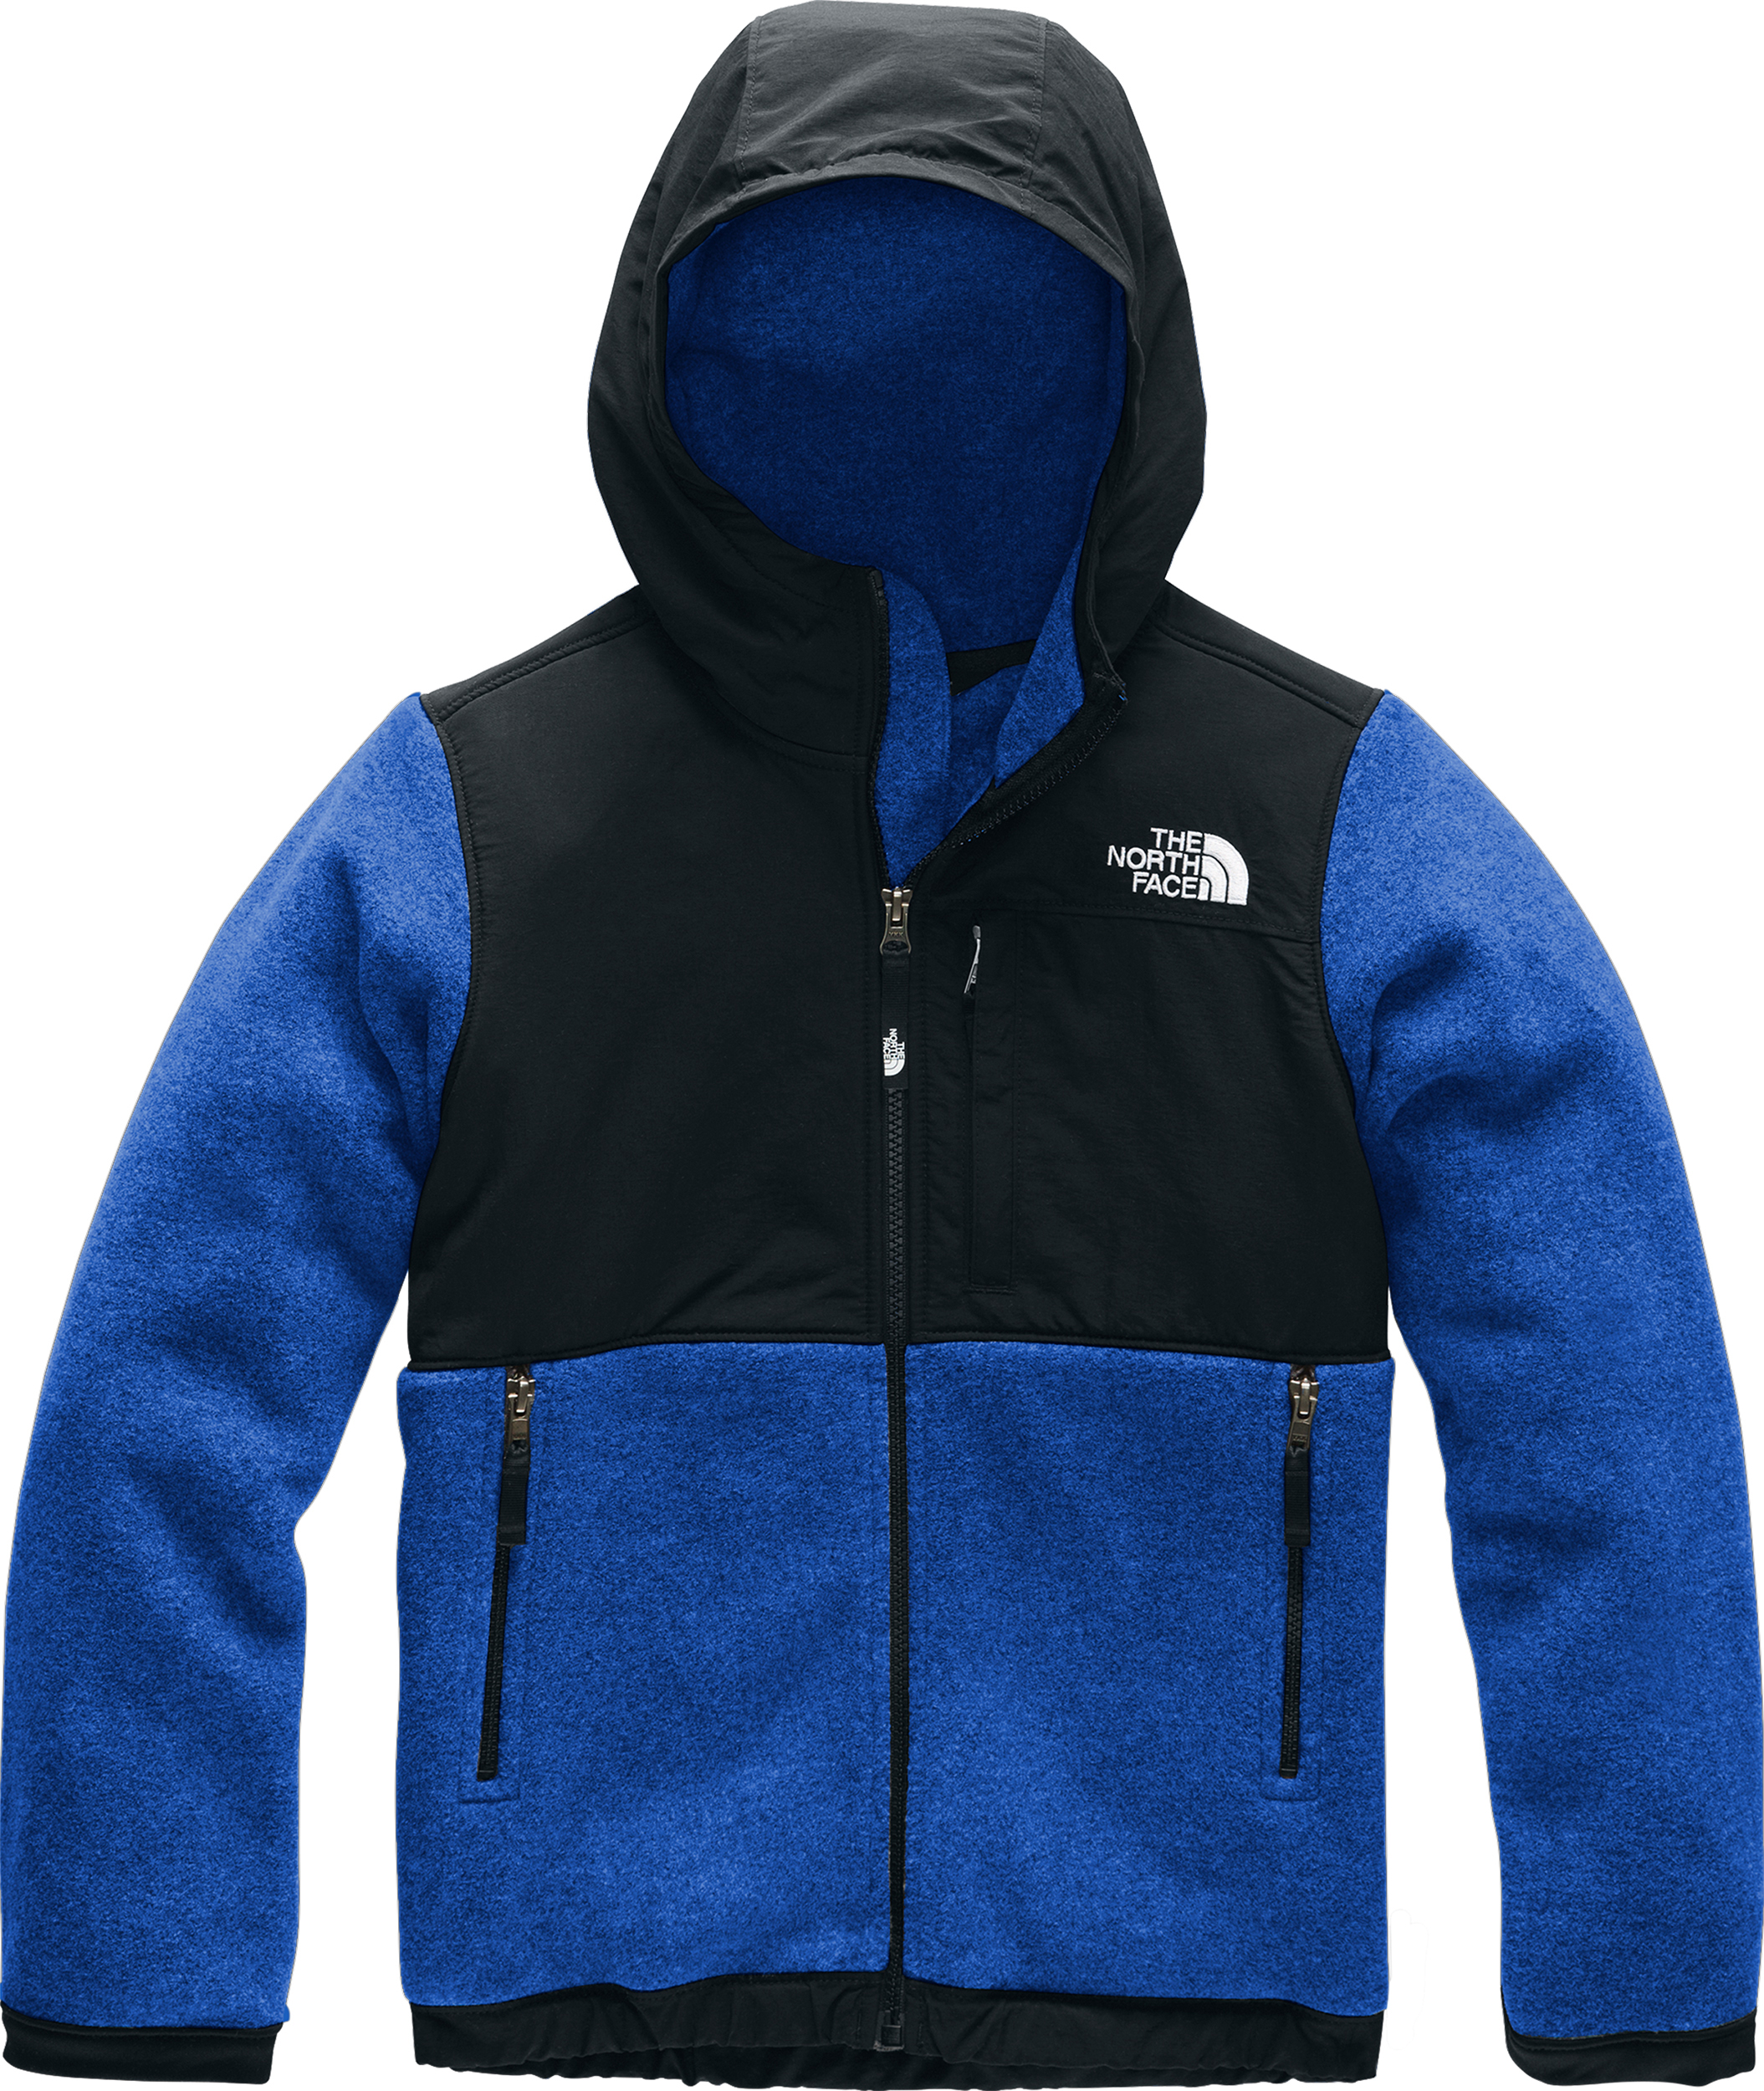 a87845176 The North Face Denali Hoodie - Children to Youths